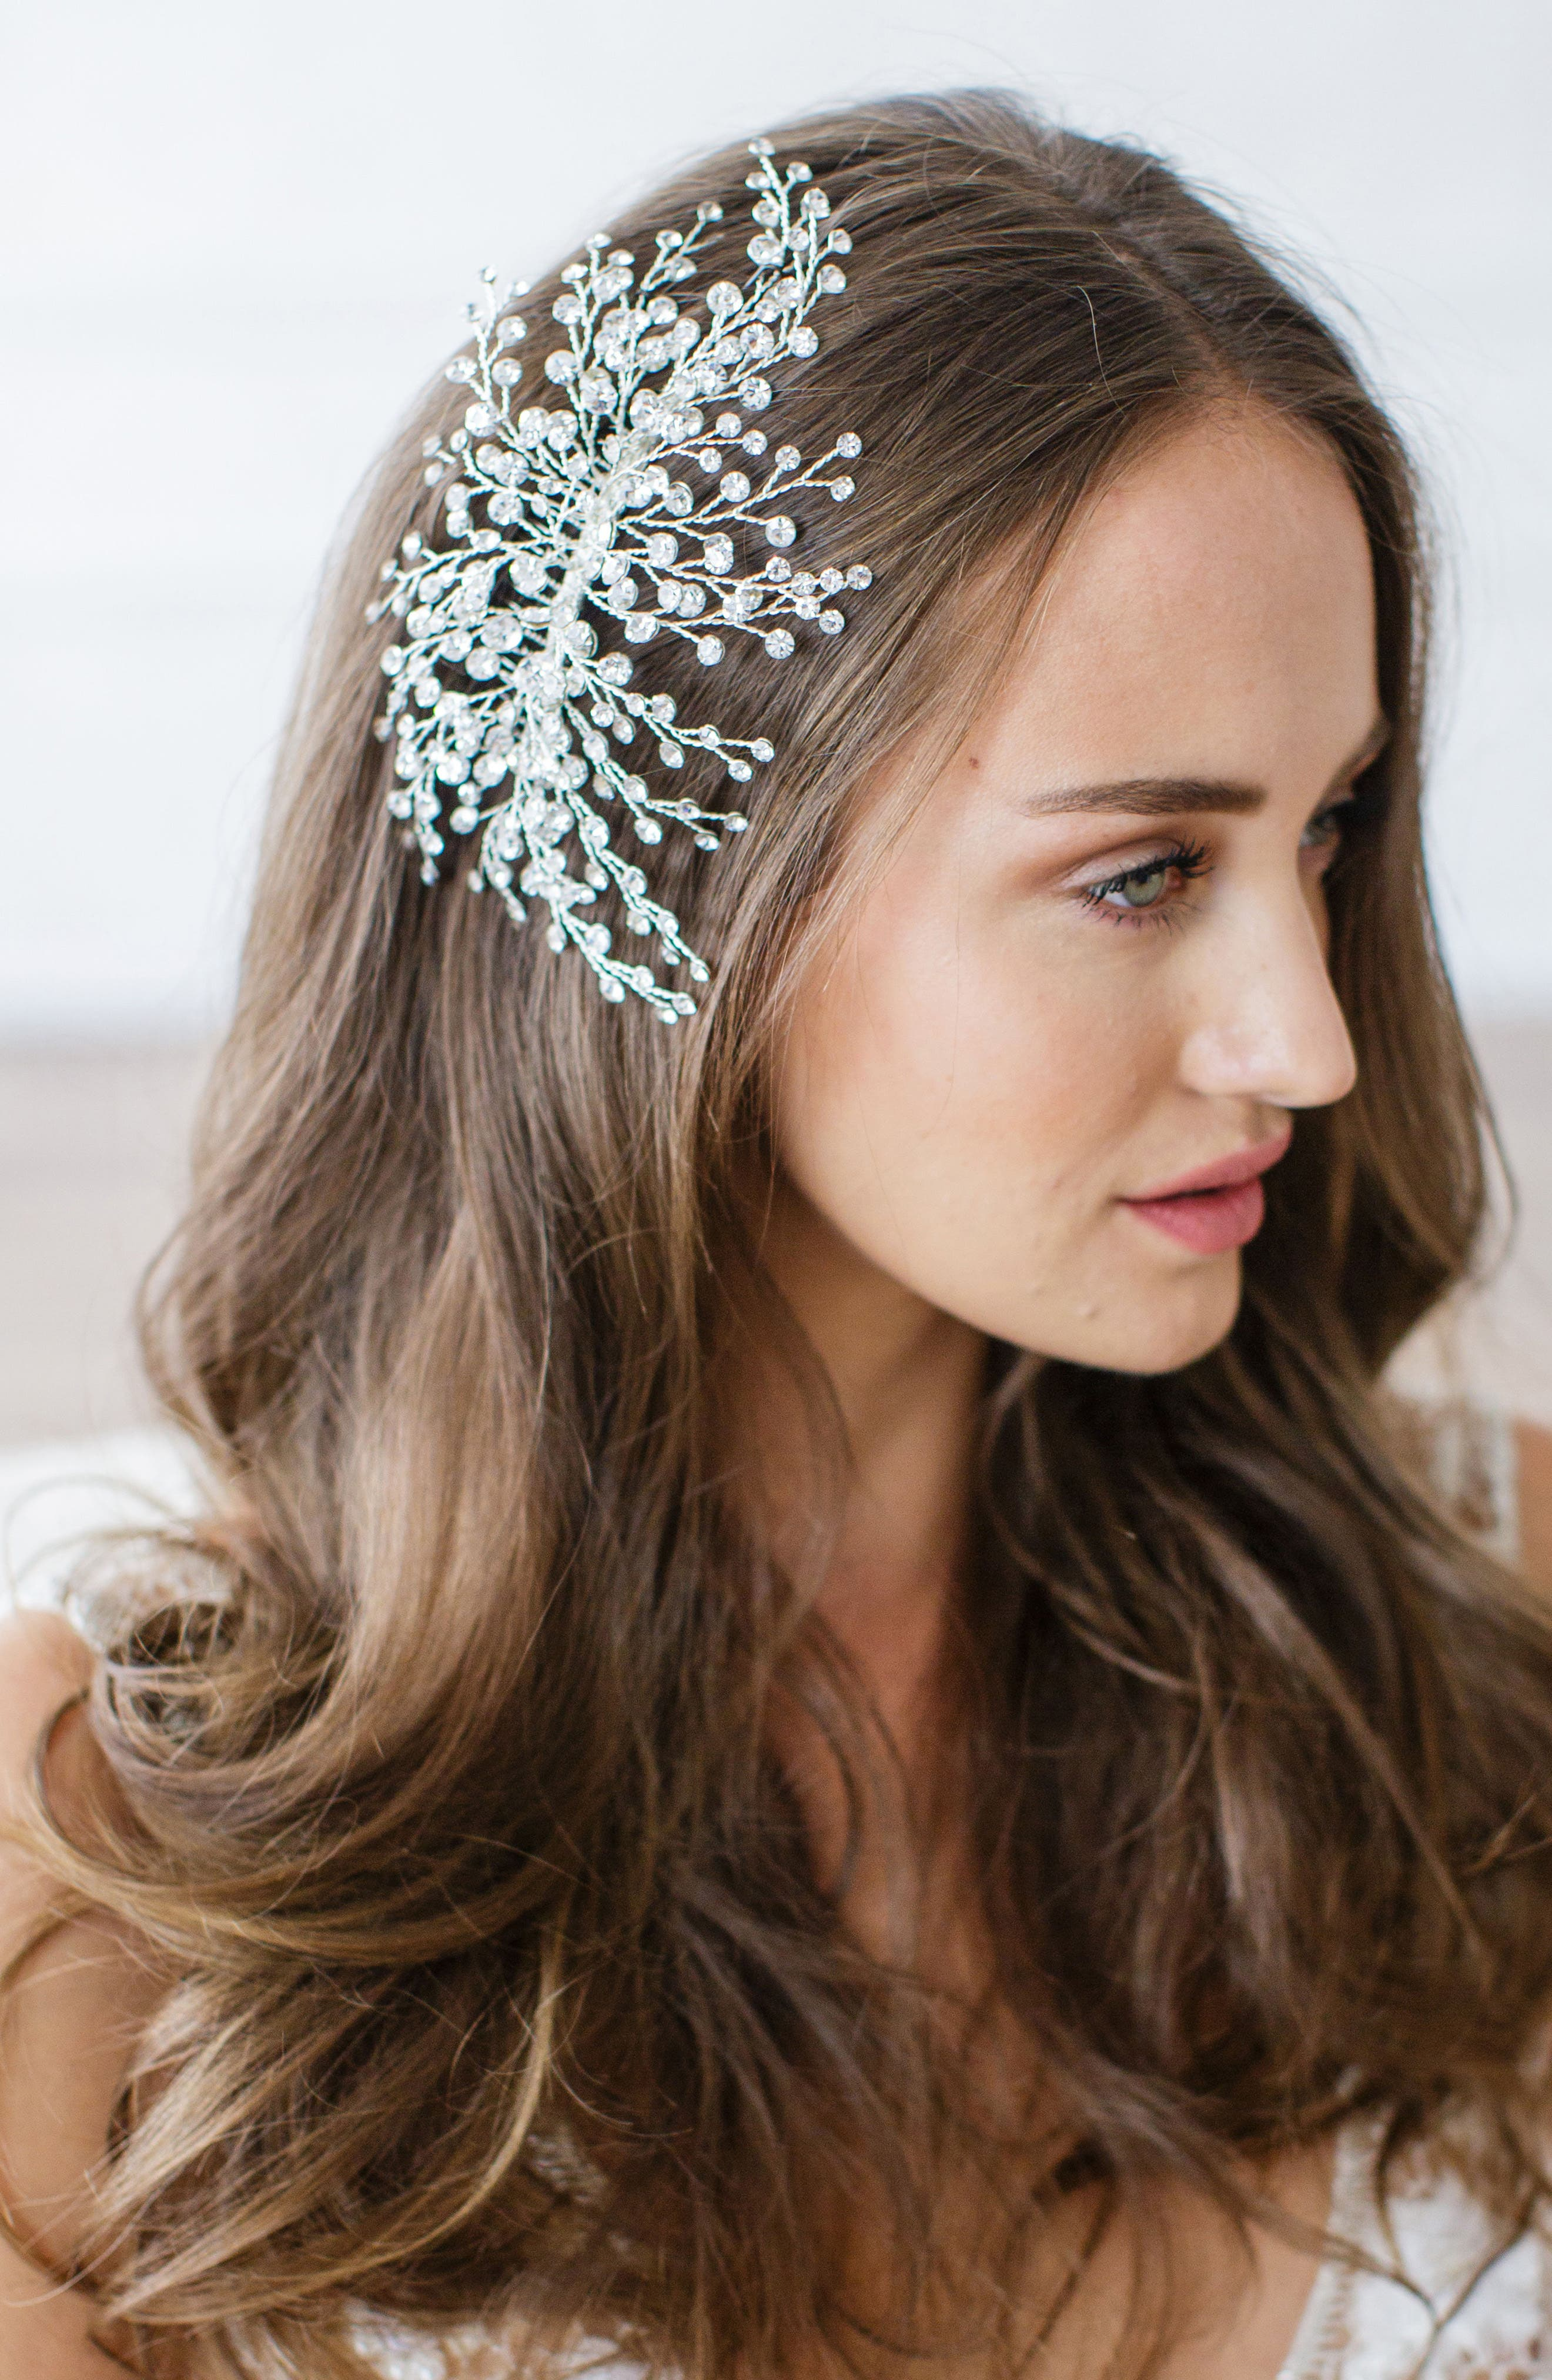 Alternate Image 1 Selected - Brides & Hairpins 'Veda' Crystal Embellished Hair Comb